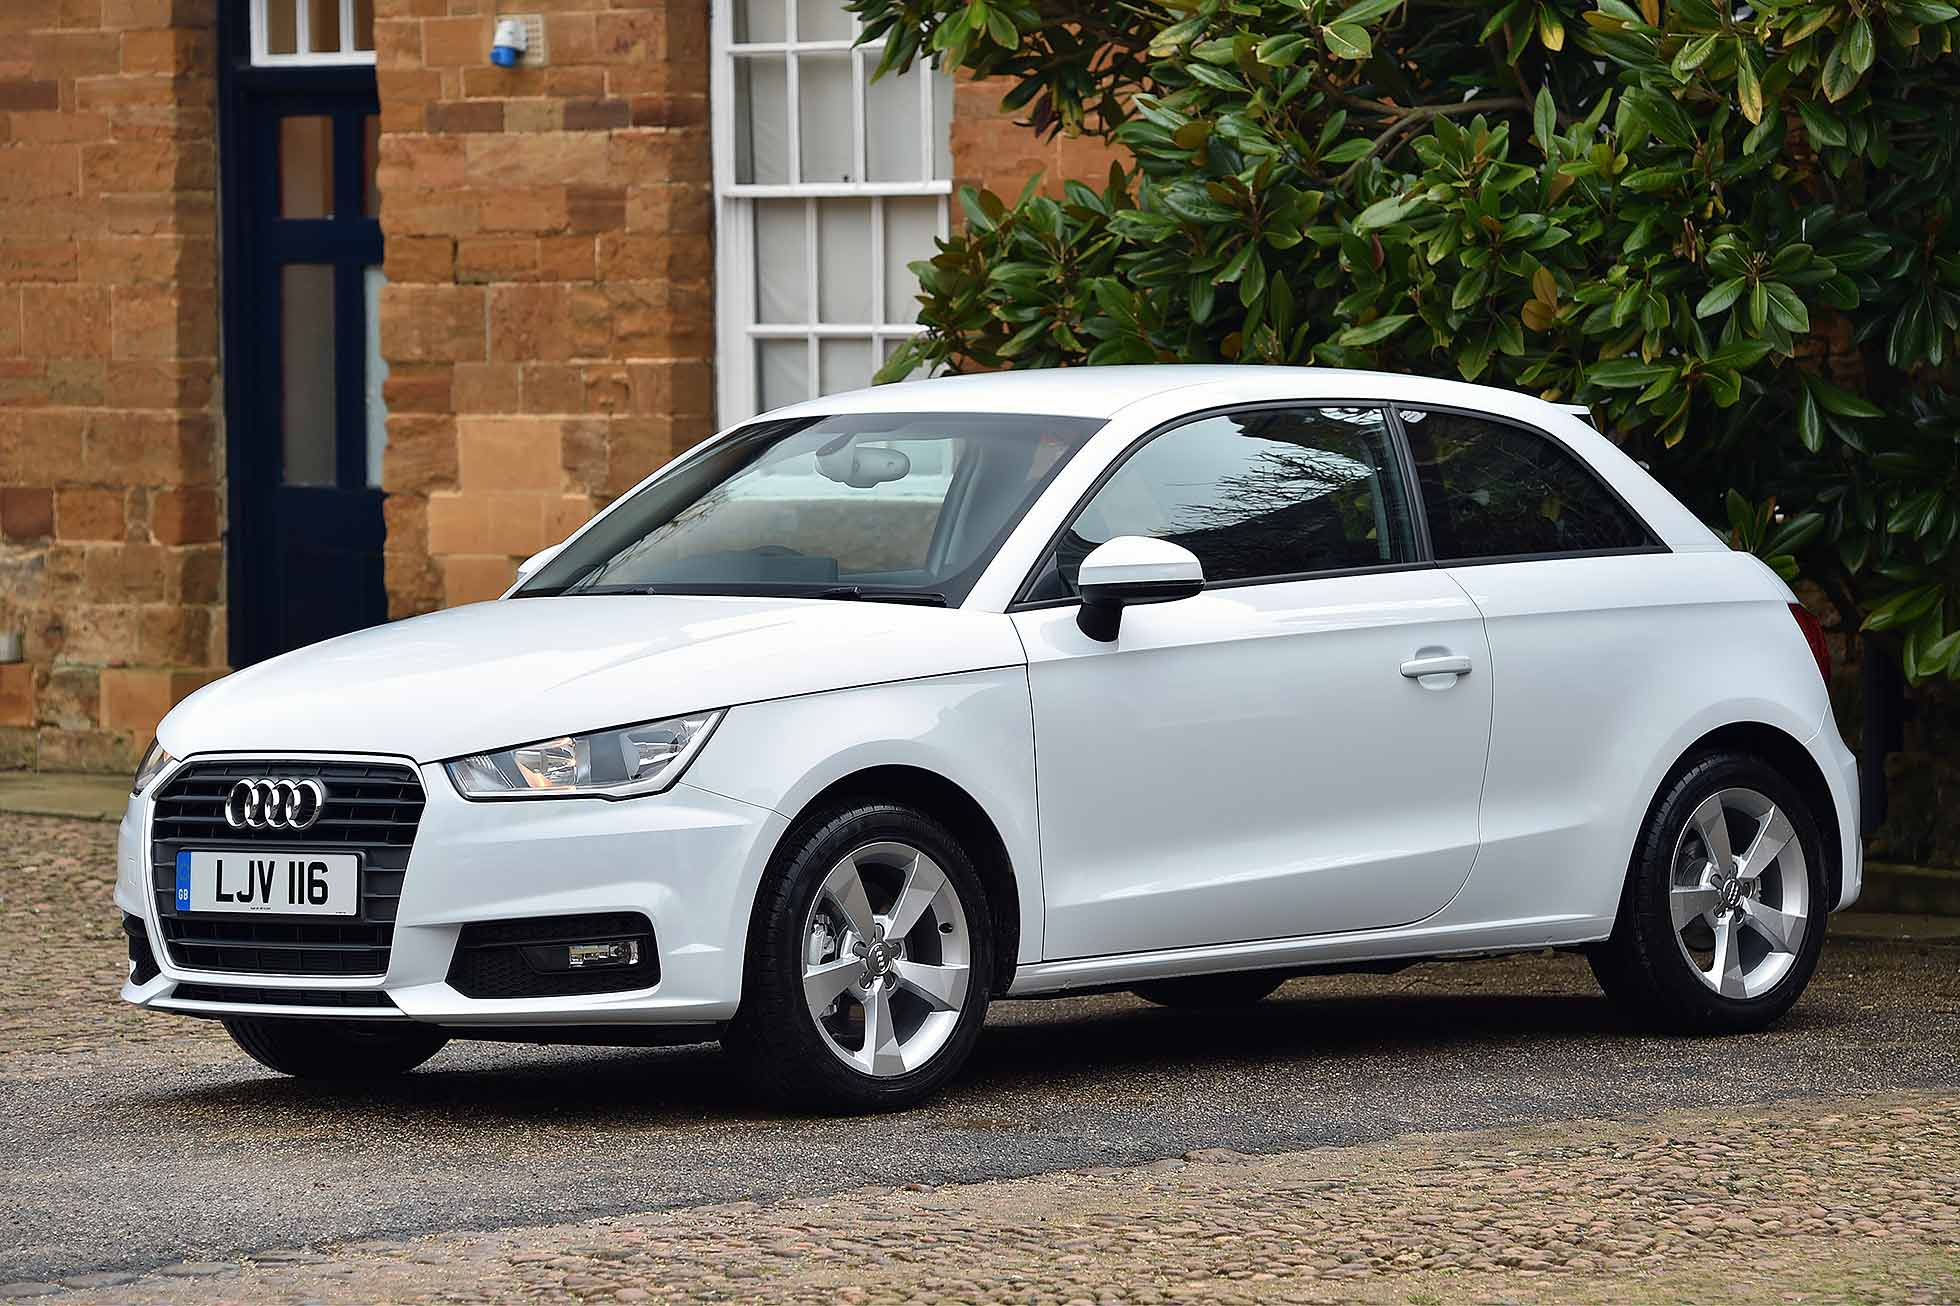 Audi A1 2015 Review | Driving News